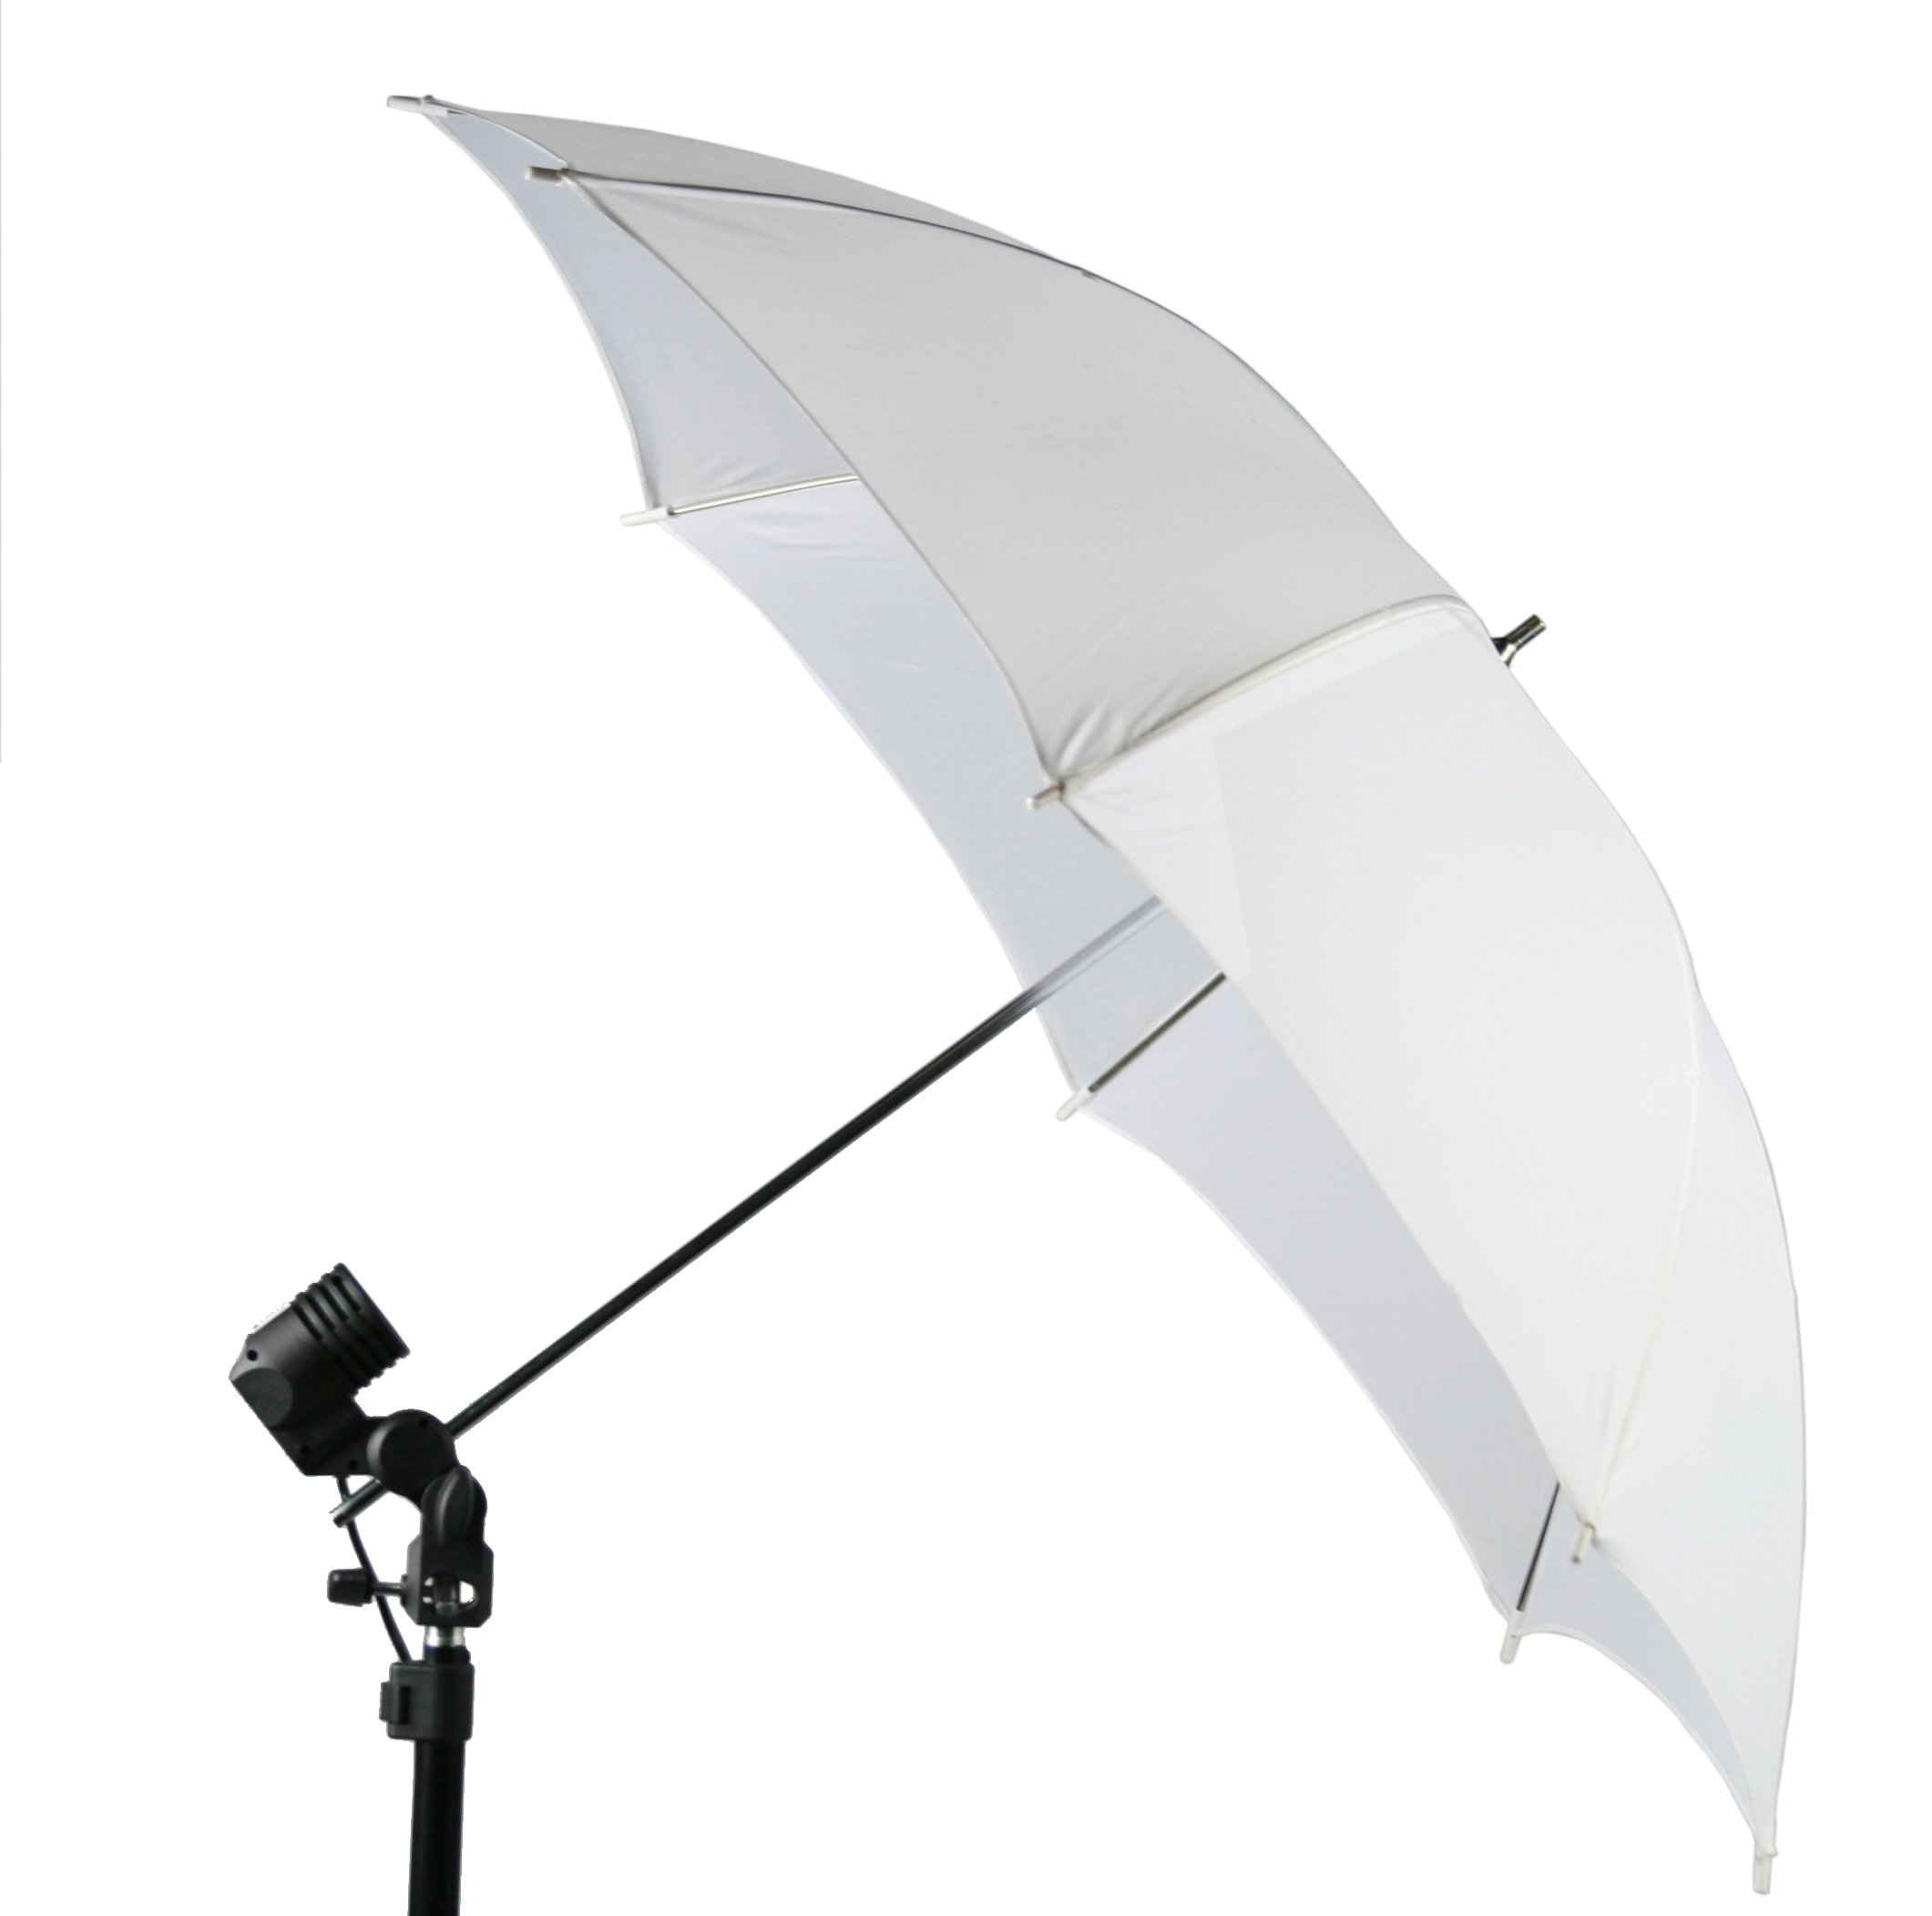 Fancierstudio Lighting Kit (DK2) Umbrella Lighting Kit, Professional Lighting for Studio Photography, Portrait Lighting, Continuous Lighting kit and Video Lighting by Fancierstudio